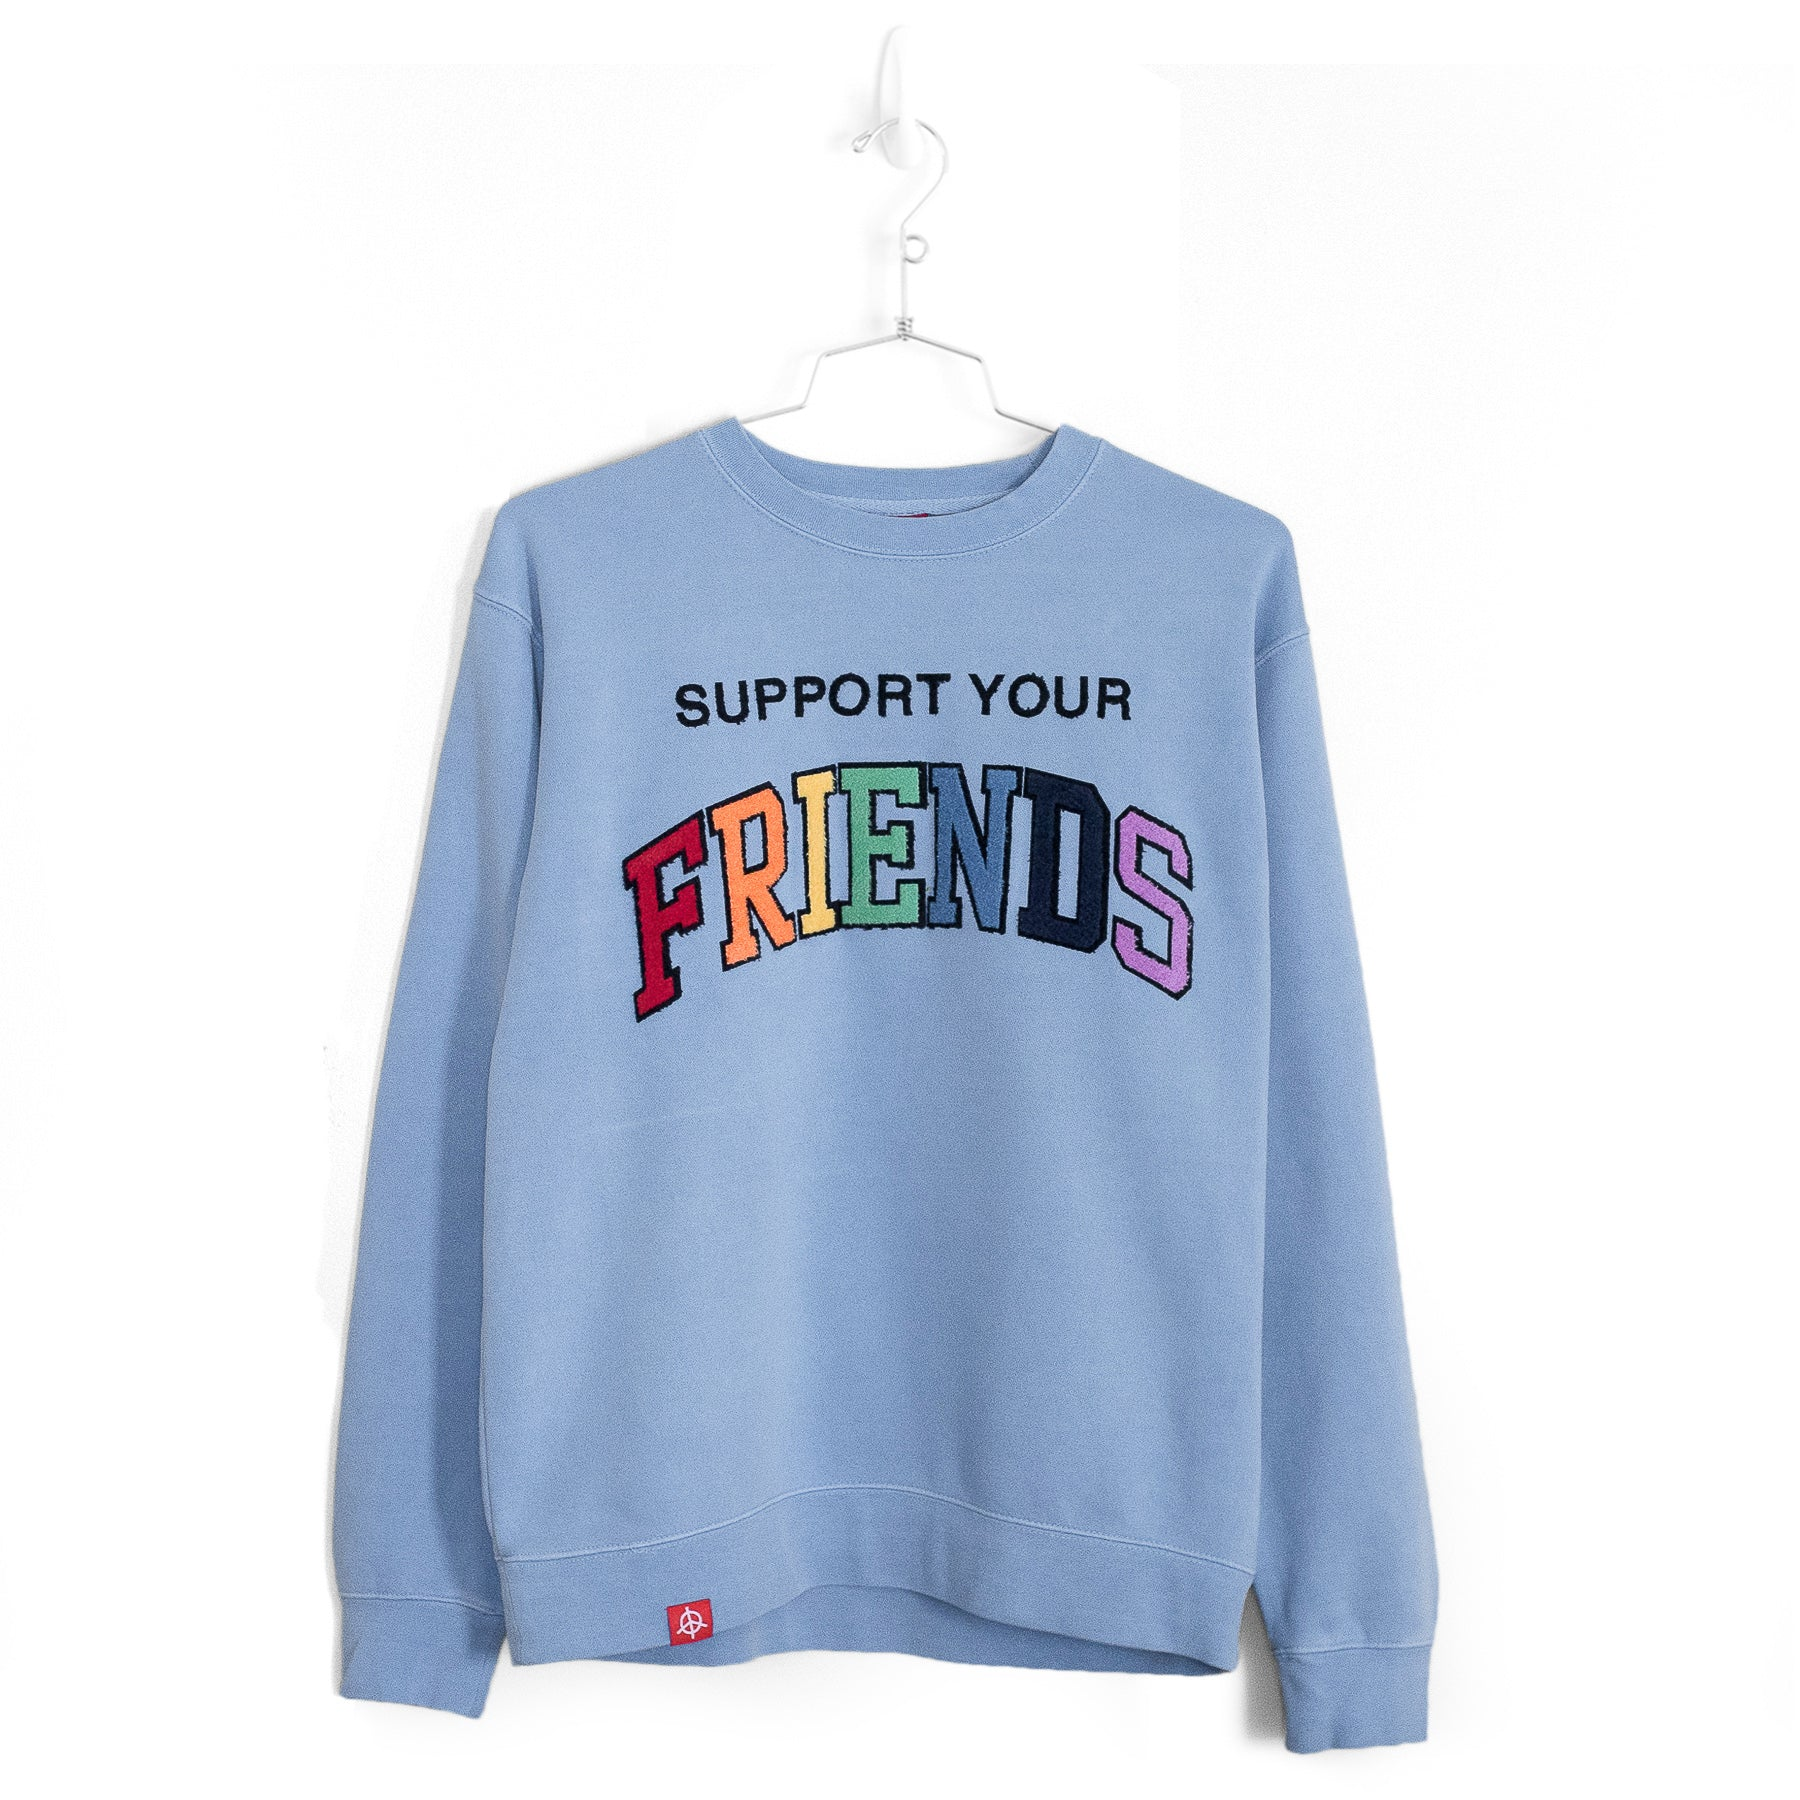 SUPPORT YOUR FRIENDS SWEATER - SUN-DRIED BLUE MULTI